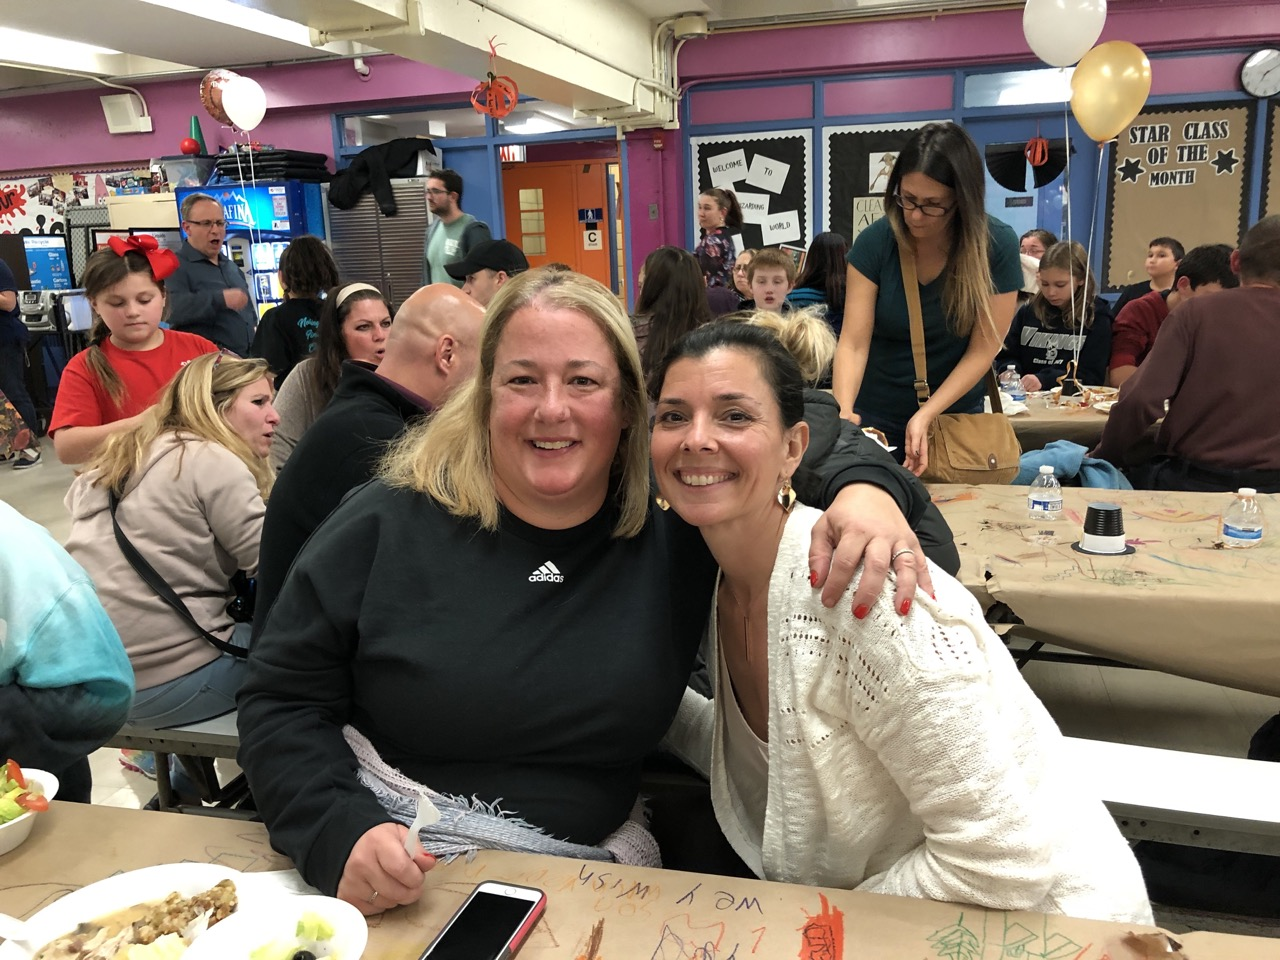 Our PTA president and friend